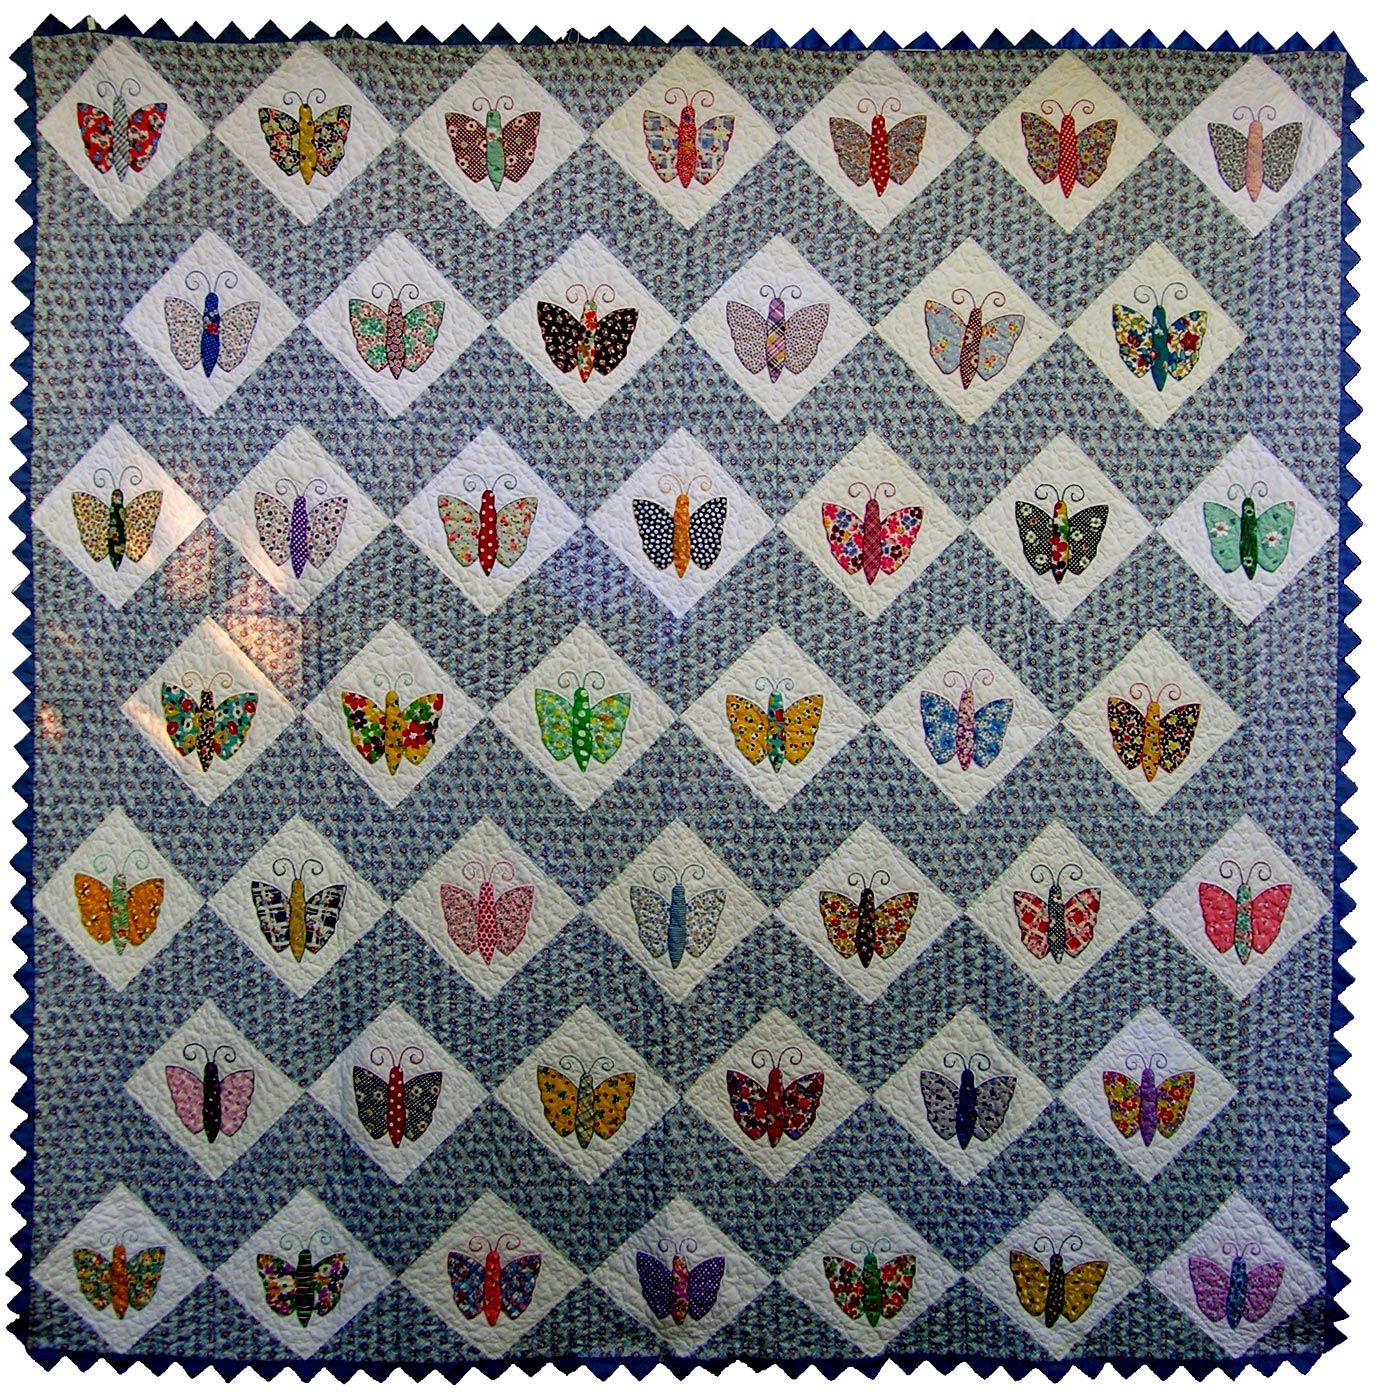 butterfly quilts   Appliqued Butterfly Quilt   }!{ Butterfly ... : appliqued quilts - Adamdwight.com